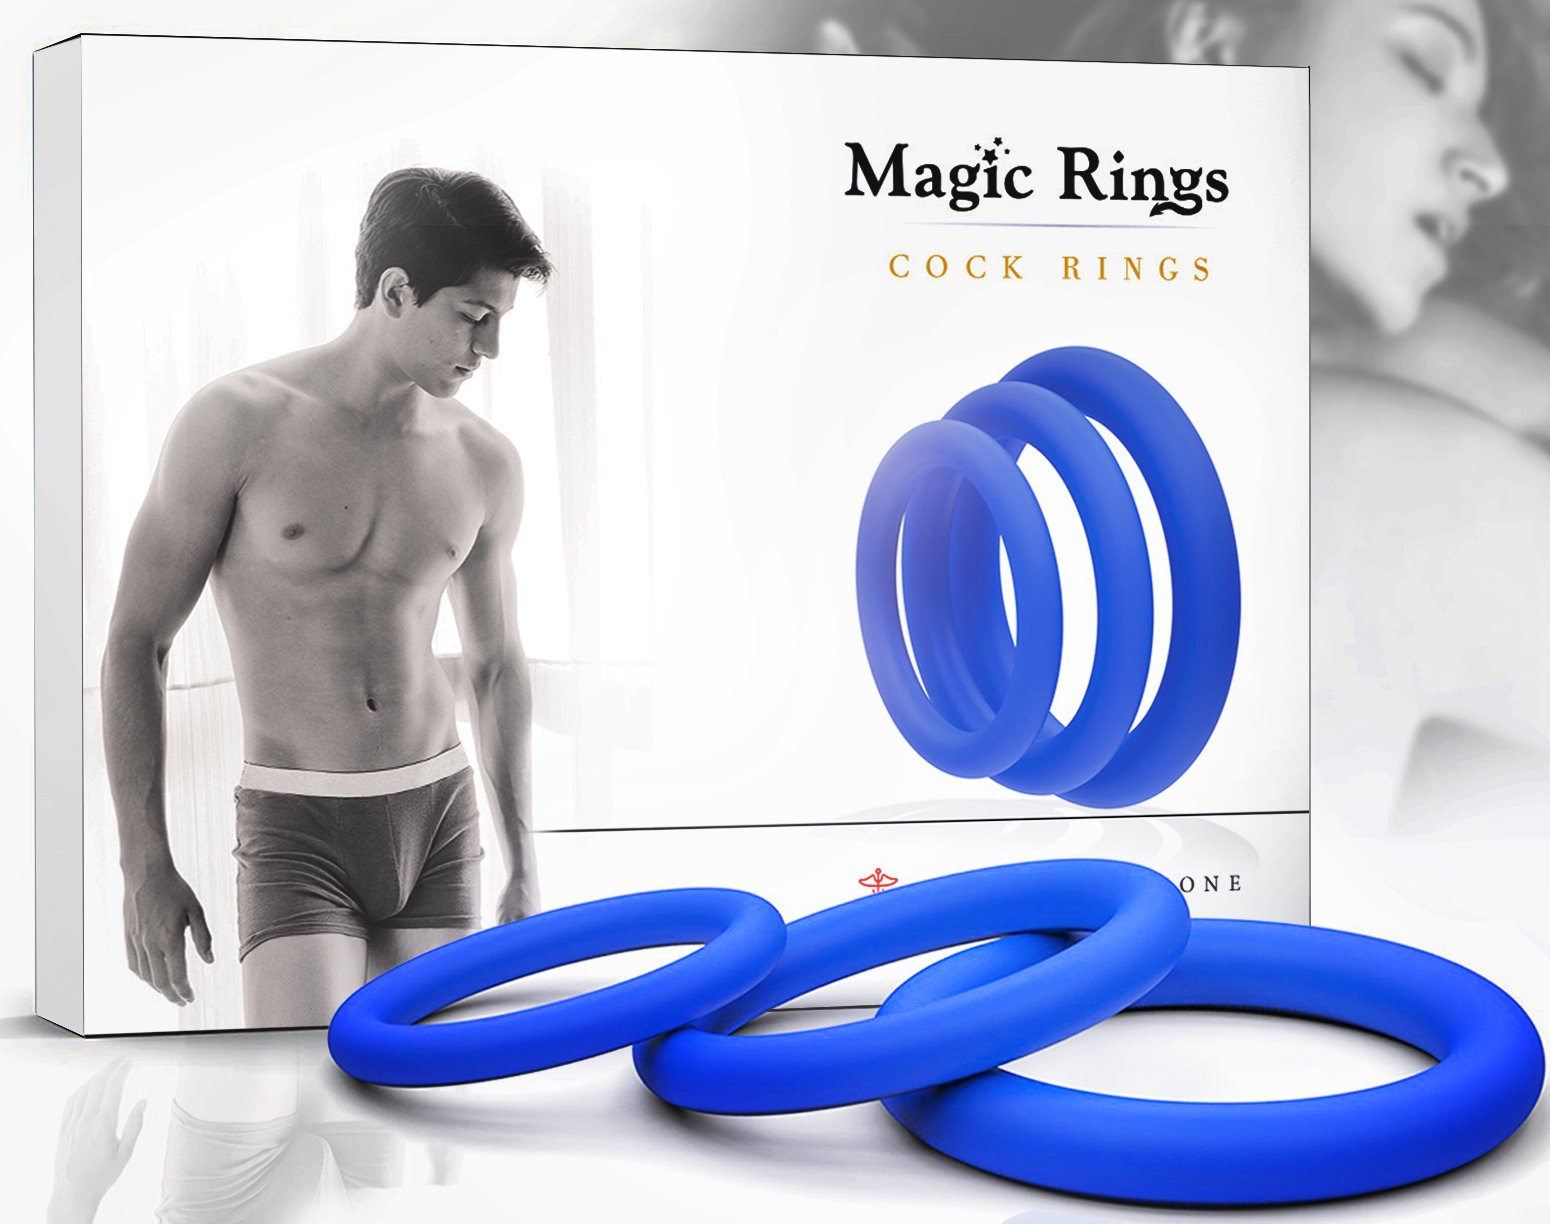 Magic Rings Penis Ring Set for Men - Adult Toys for Couples - Sex Enhancer Ring - Silicone Cock Rings for Longer Orgasm - Blue